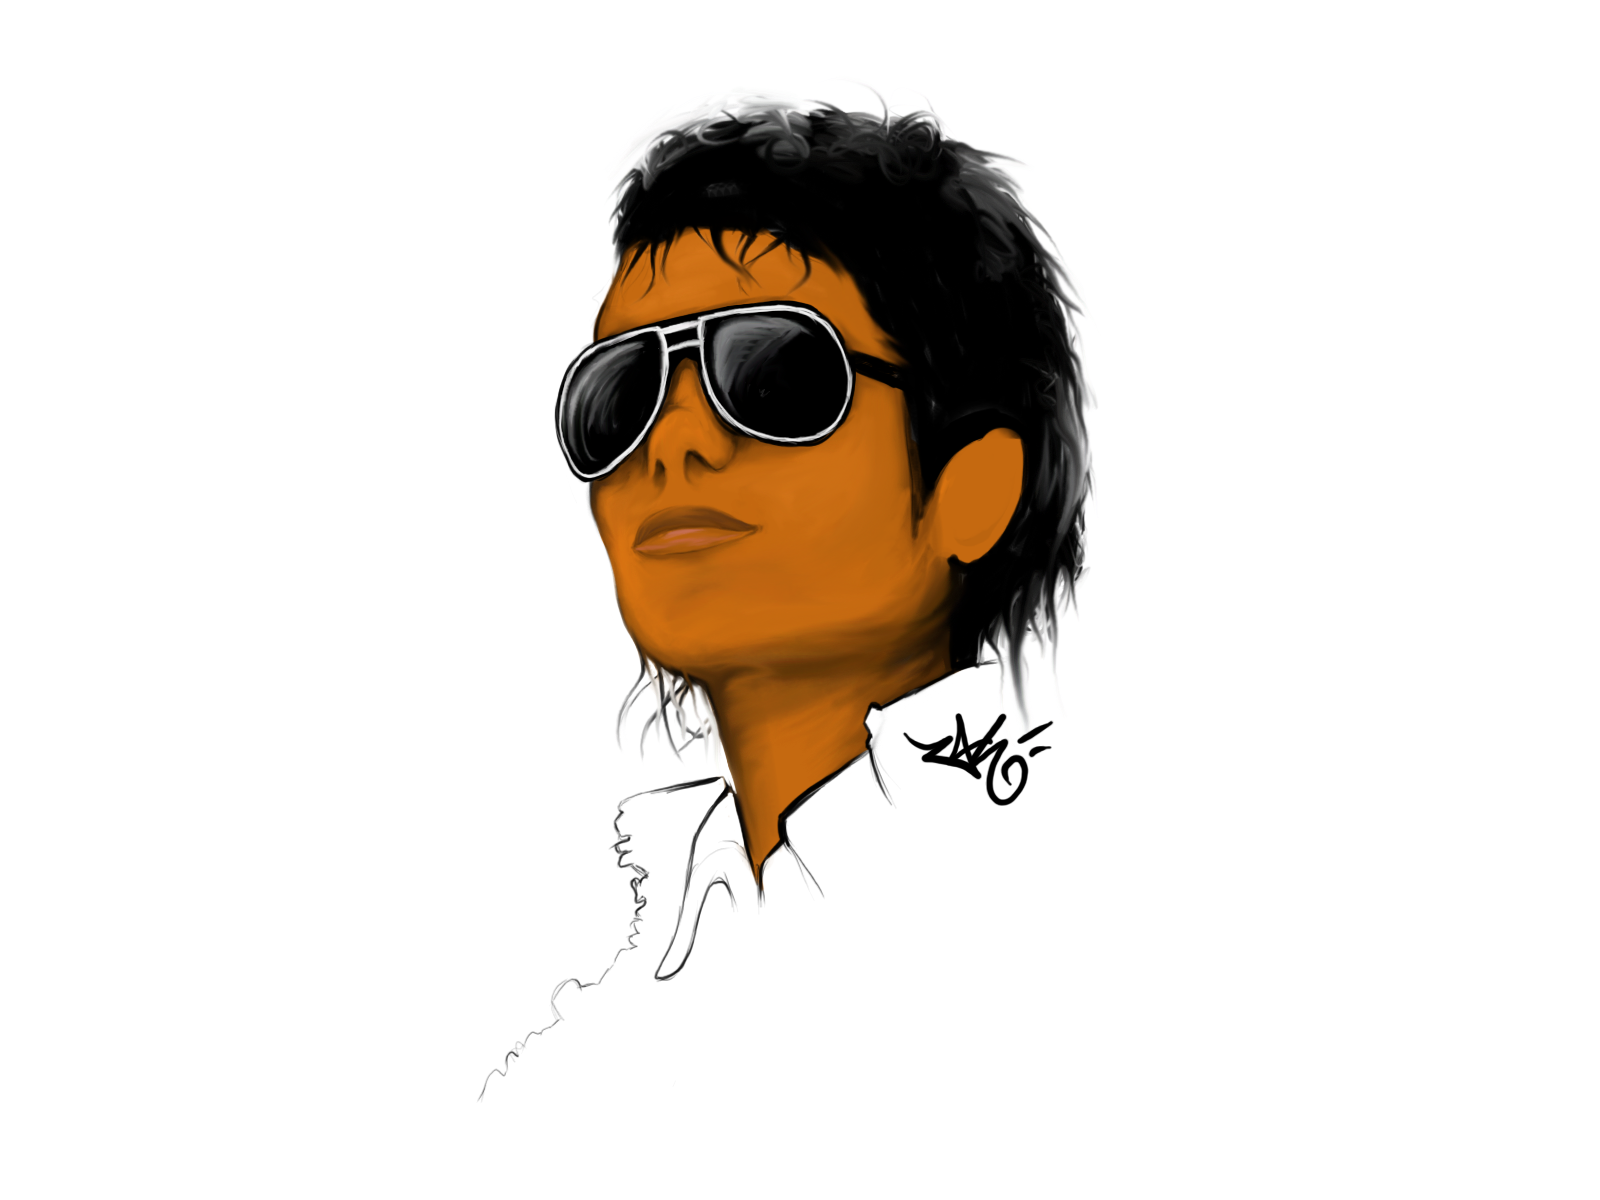 commemorative speech on michael jackson On june 25, 2009, michael jackson died of acute propofol and benzodiazepine intoxication at his home on north carolwood drive in.